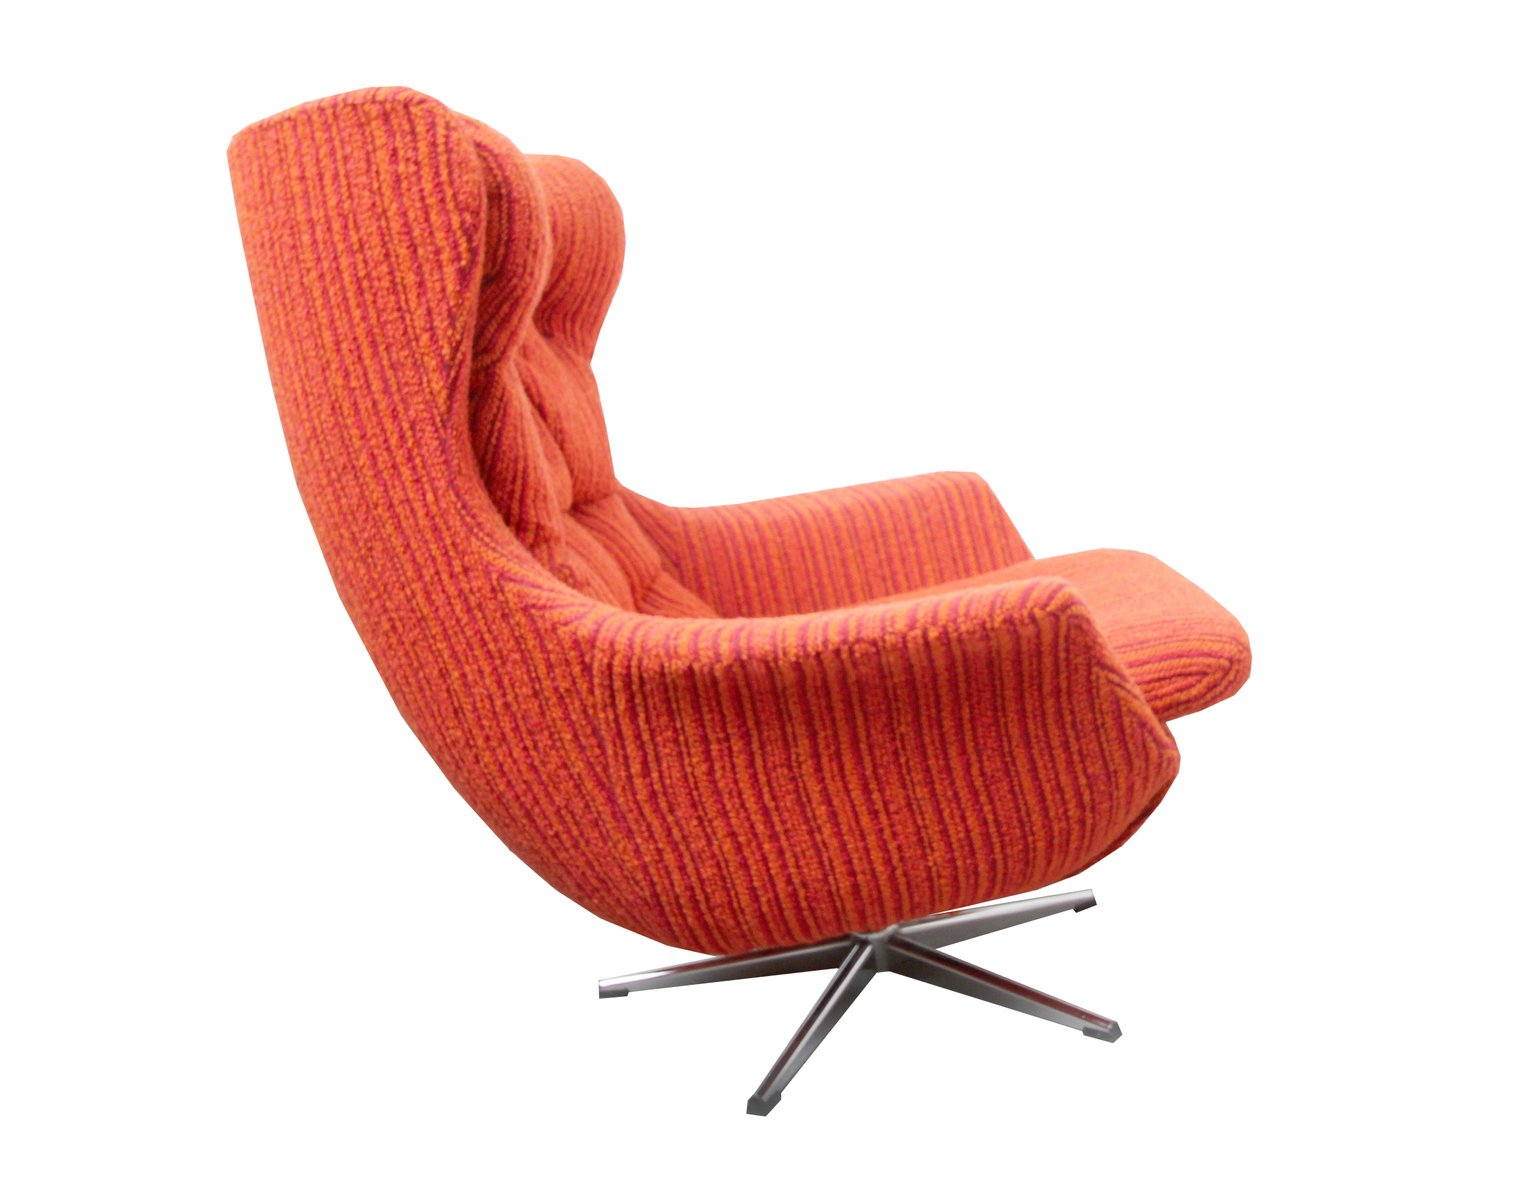 orangefarbener midcentury egg chair 1970er bei pamono kaufen. Black Bedroom Furniture Sets. Home Design Ideas